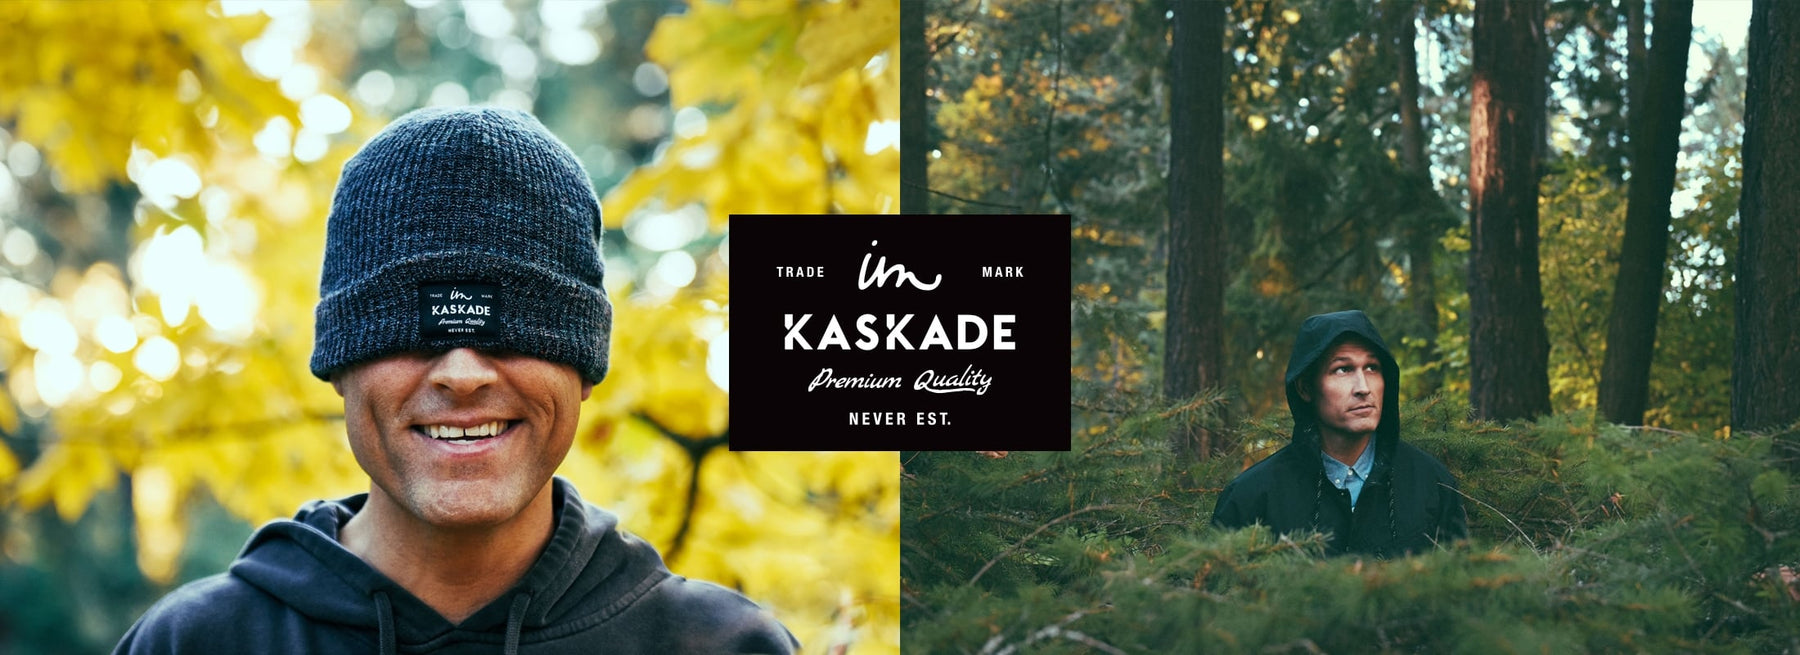 IM x Kaskade Lookbook